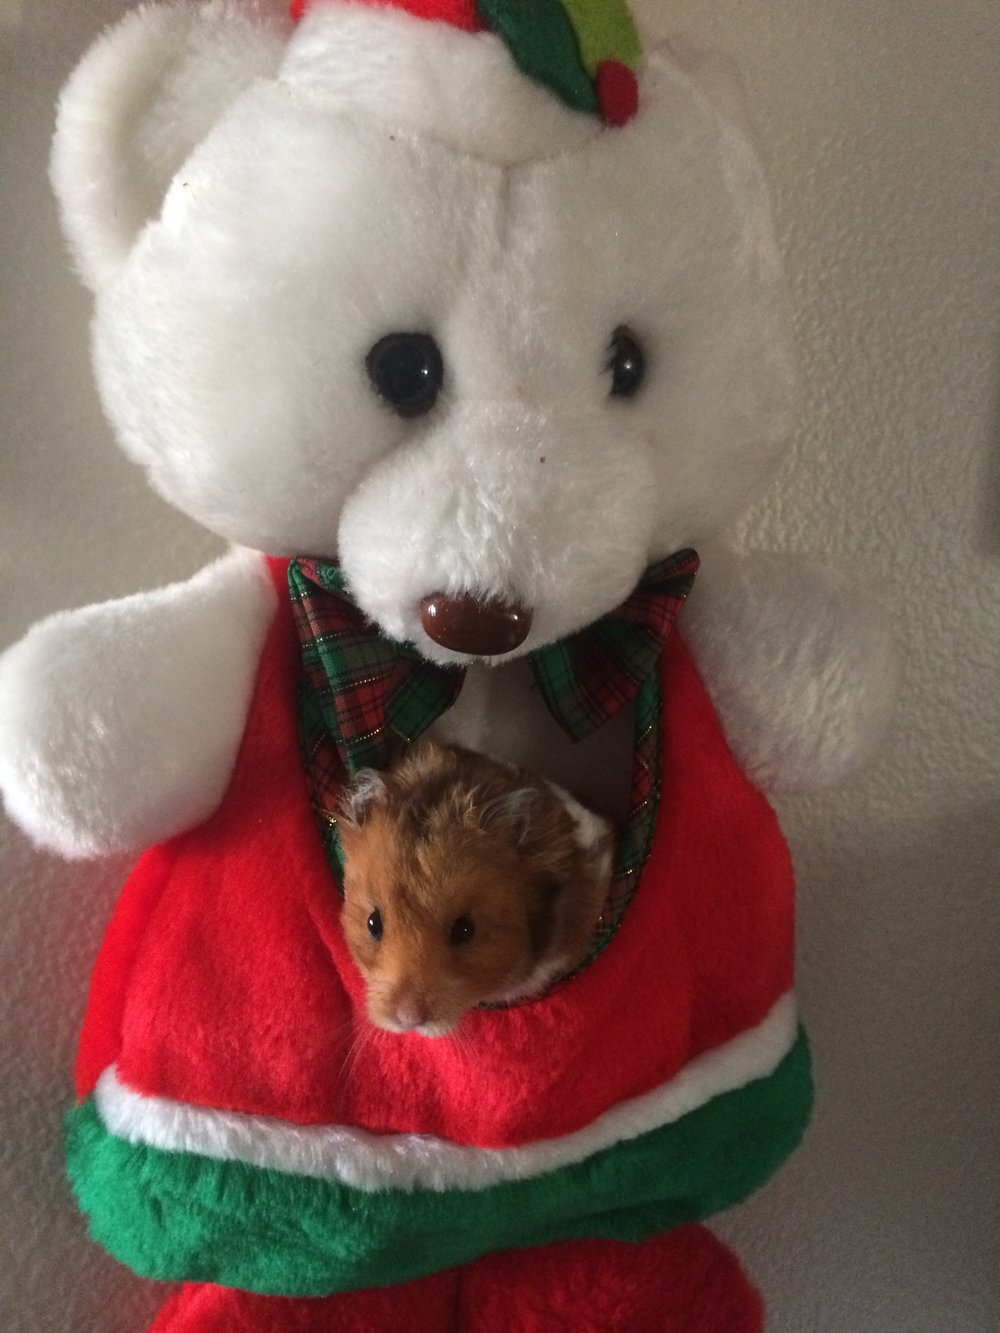 Frodo says that the meta irony of making his stocking a rodent is a little strange, but he's down with it, so long as it gets him a present from Santa Paws, which it did.